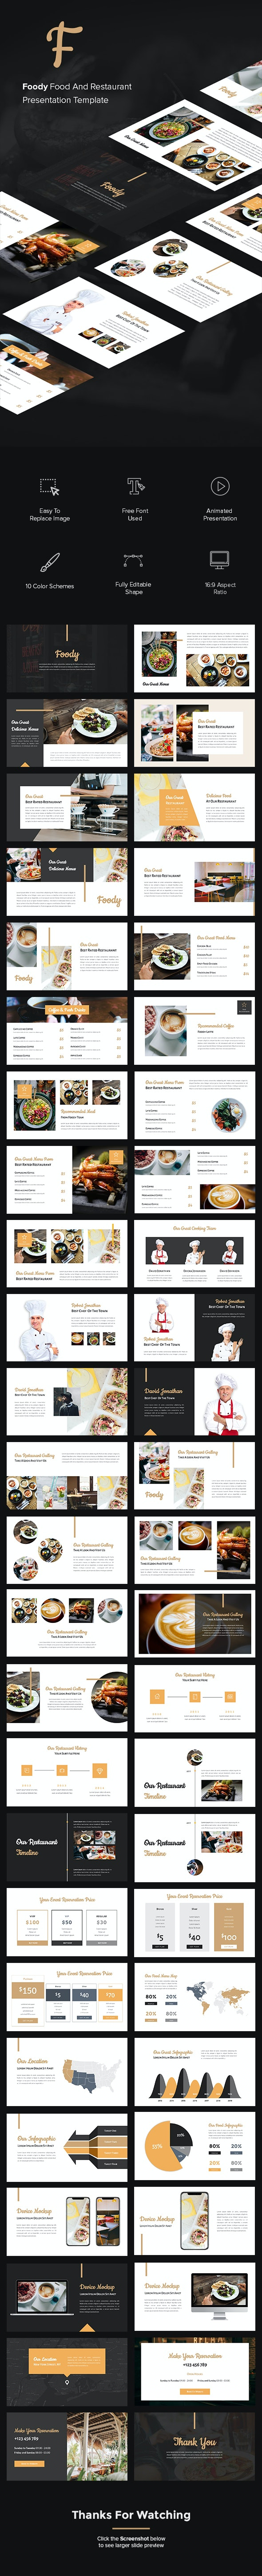 Foody - Food And Restaurant Google Slides Template - Google Slides Presentation Templates